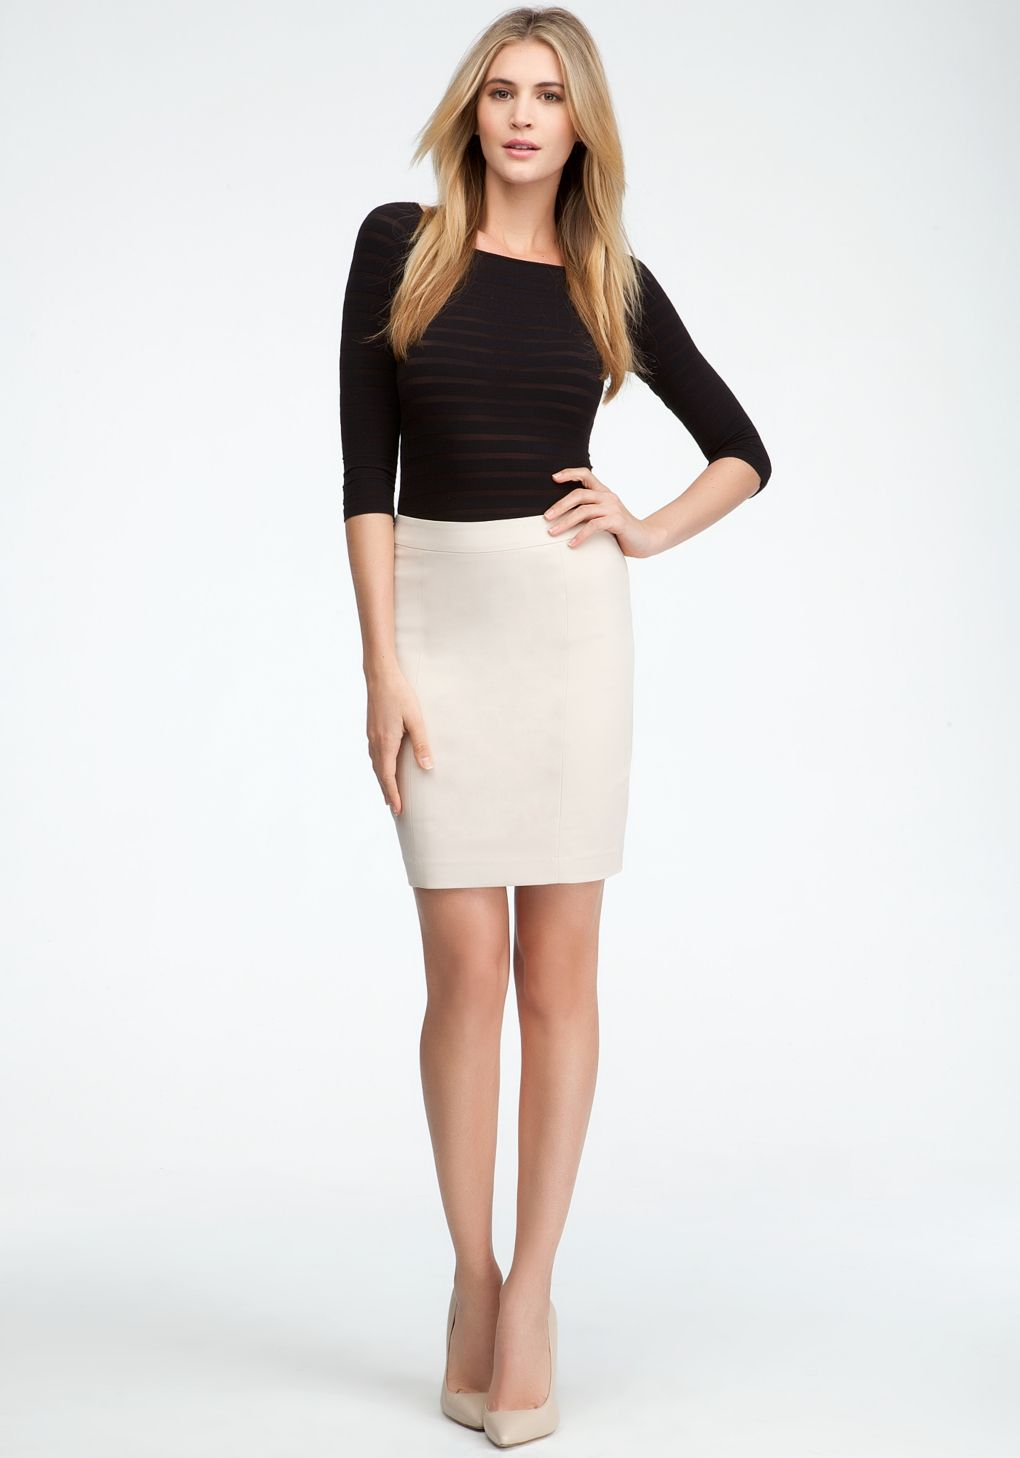 Women's White Mini Pencil Skirt | Pencil skirts and Bebe